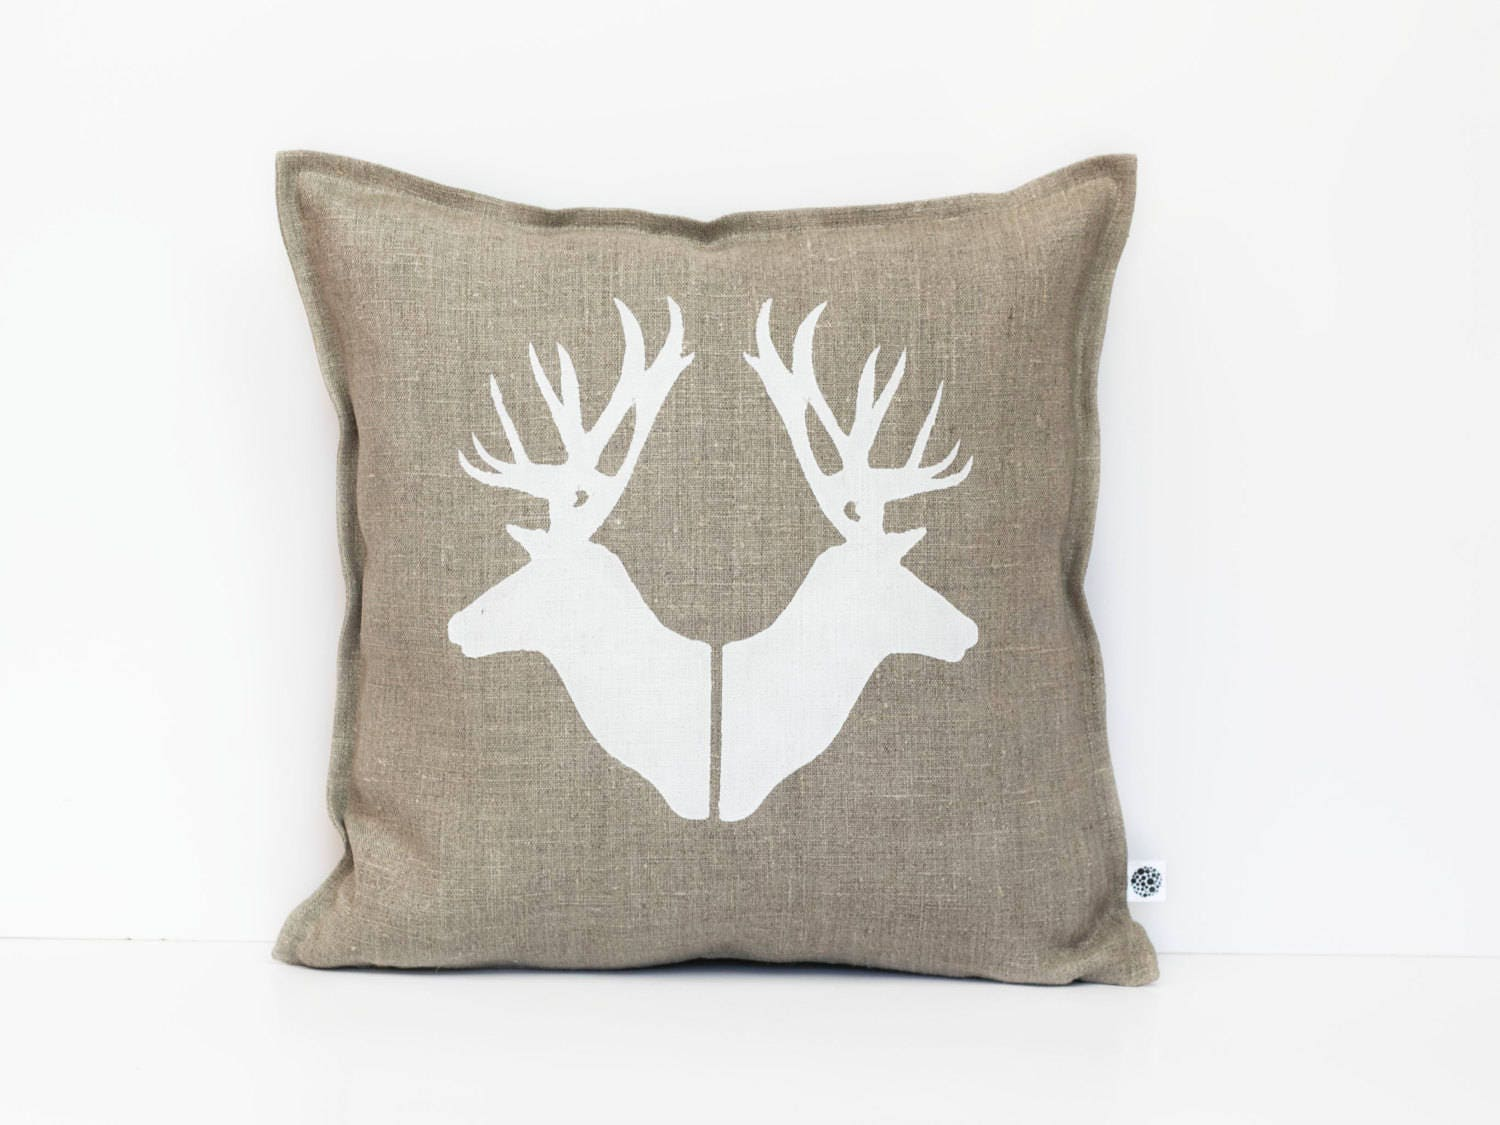 Throw Pillows Deer : Deer pillows Deer heads throw pillows Deer pillow covers